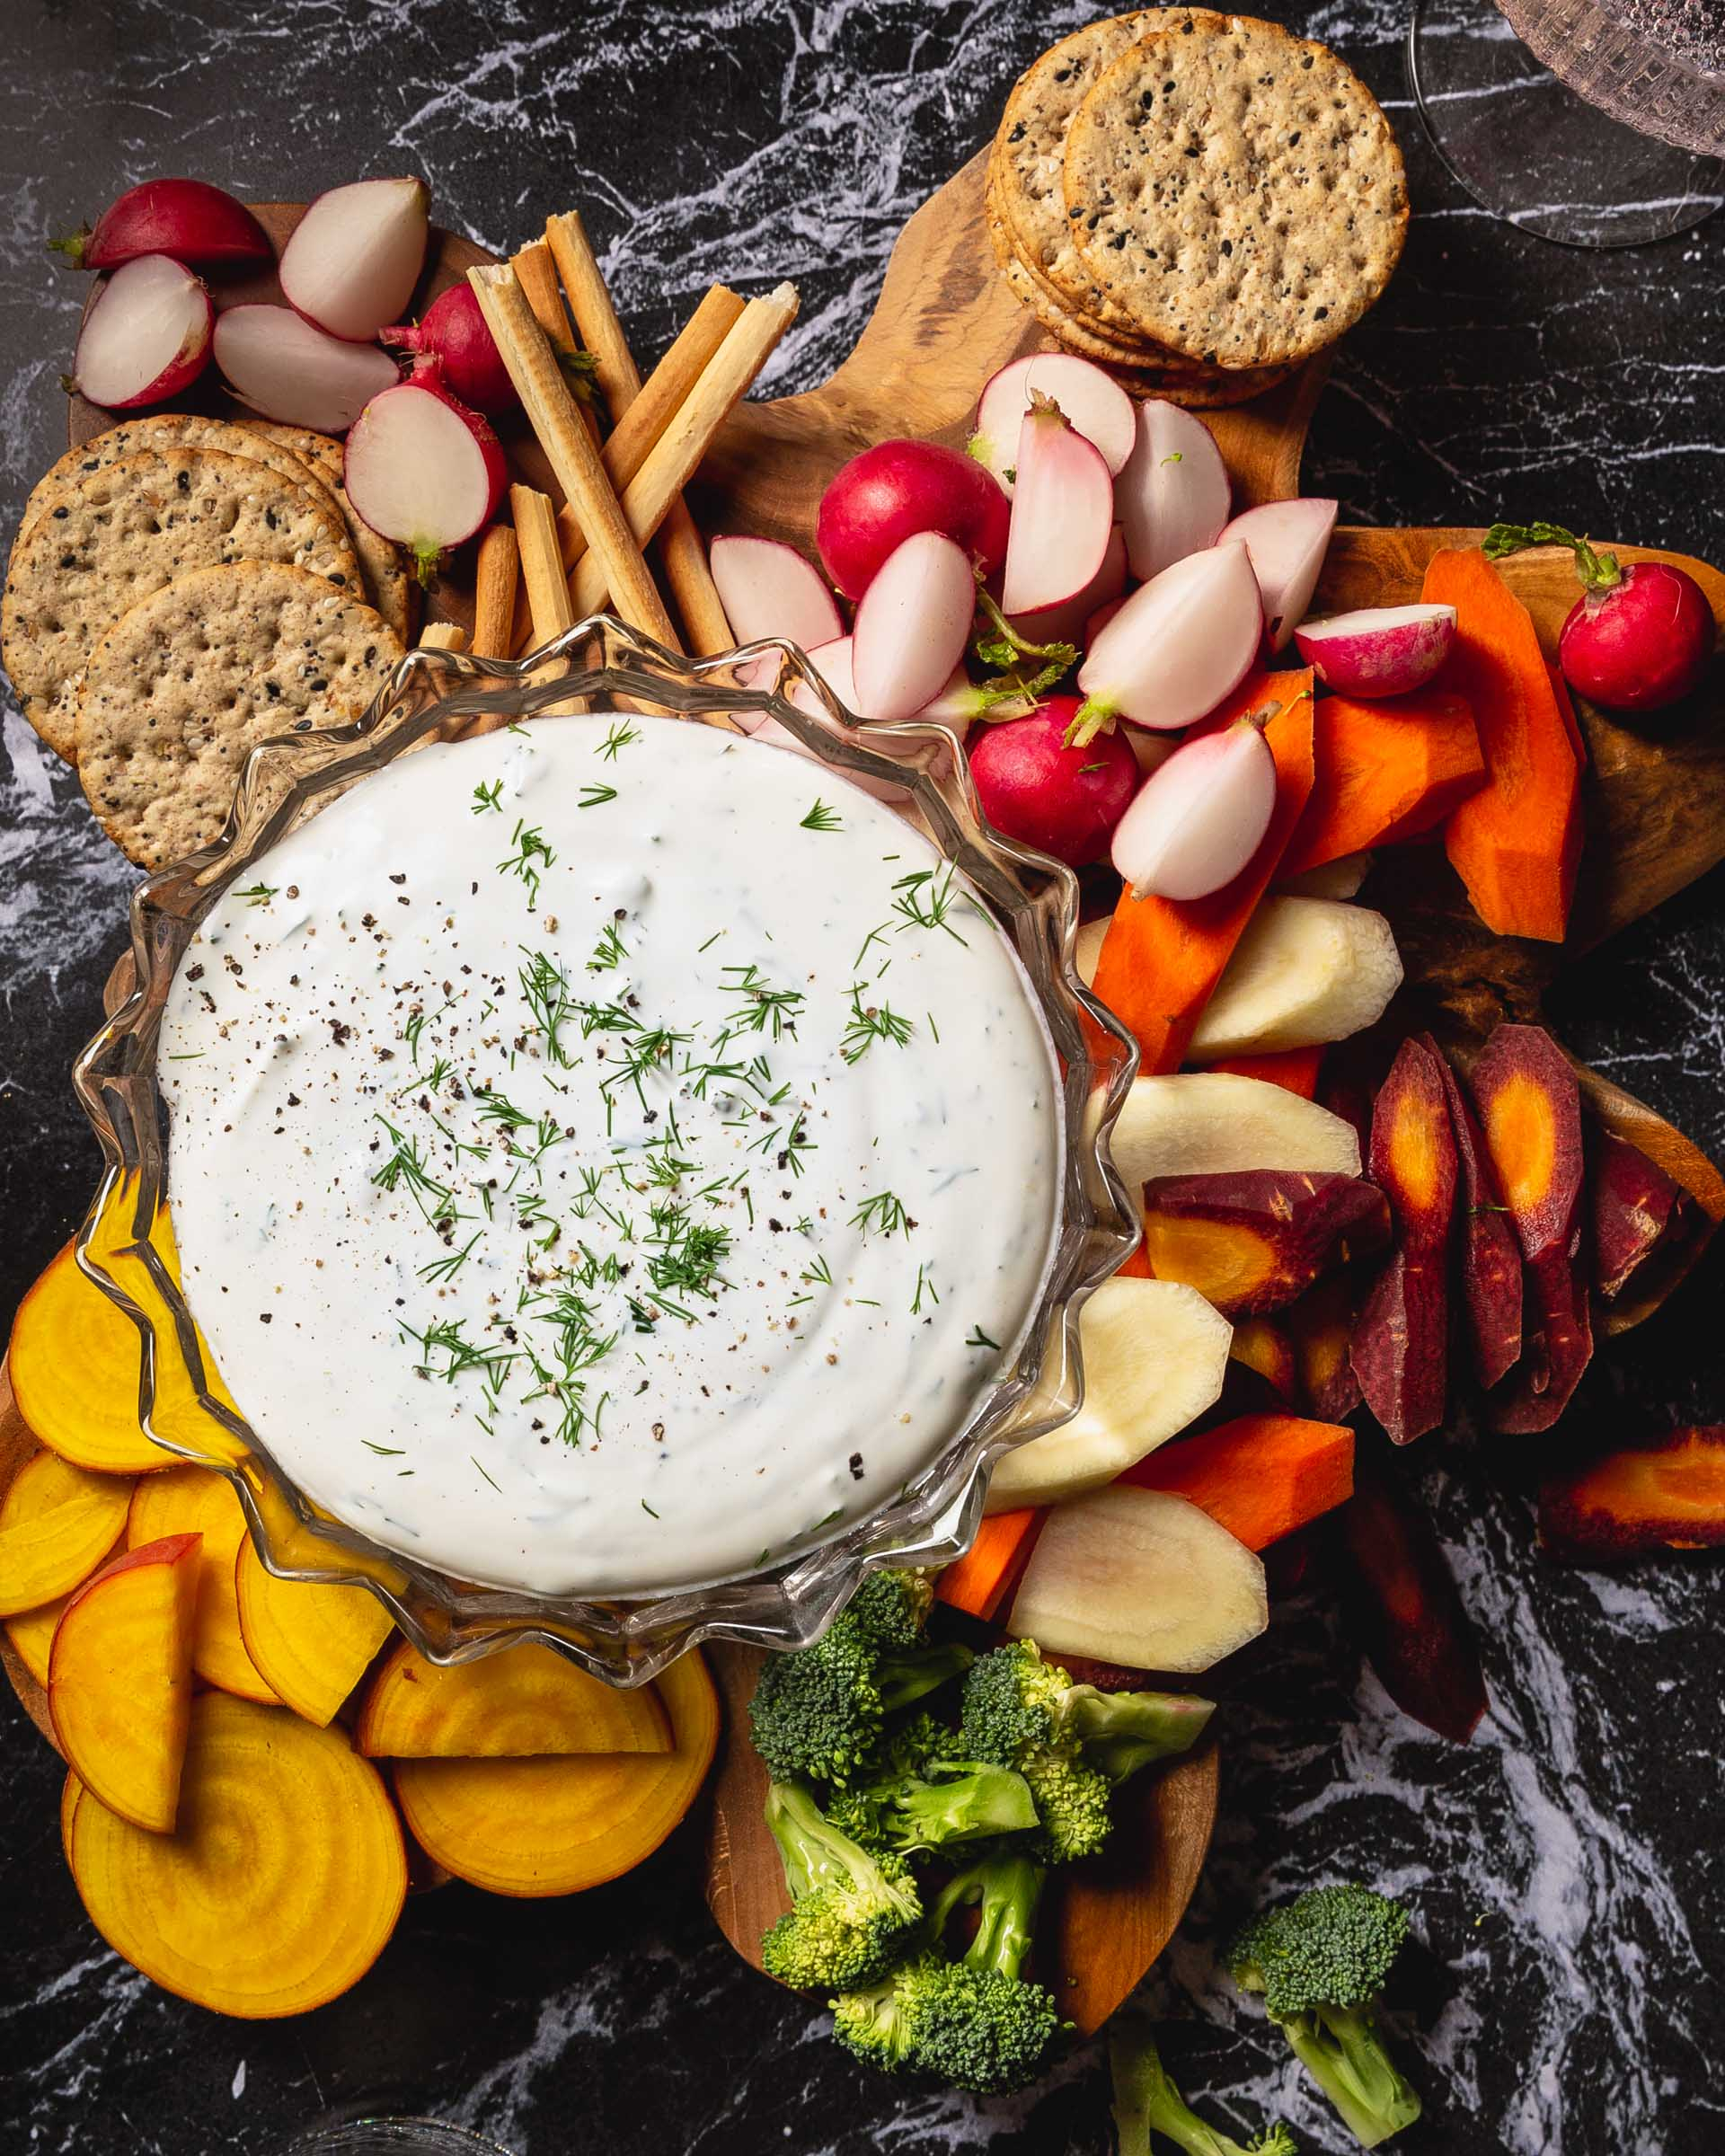 buttermilk dip in bowl with veggies and crackers around it